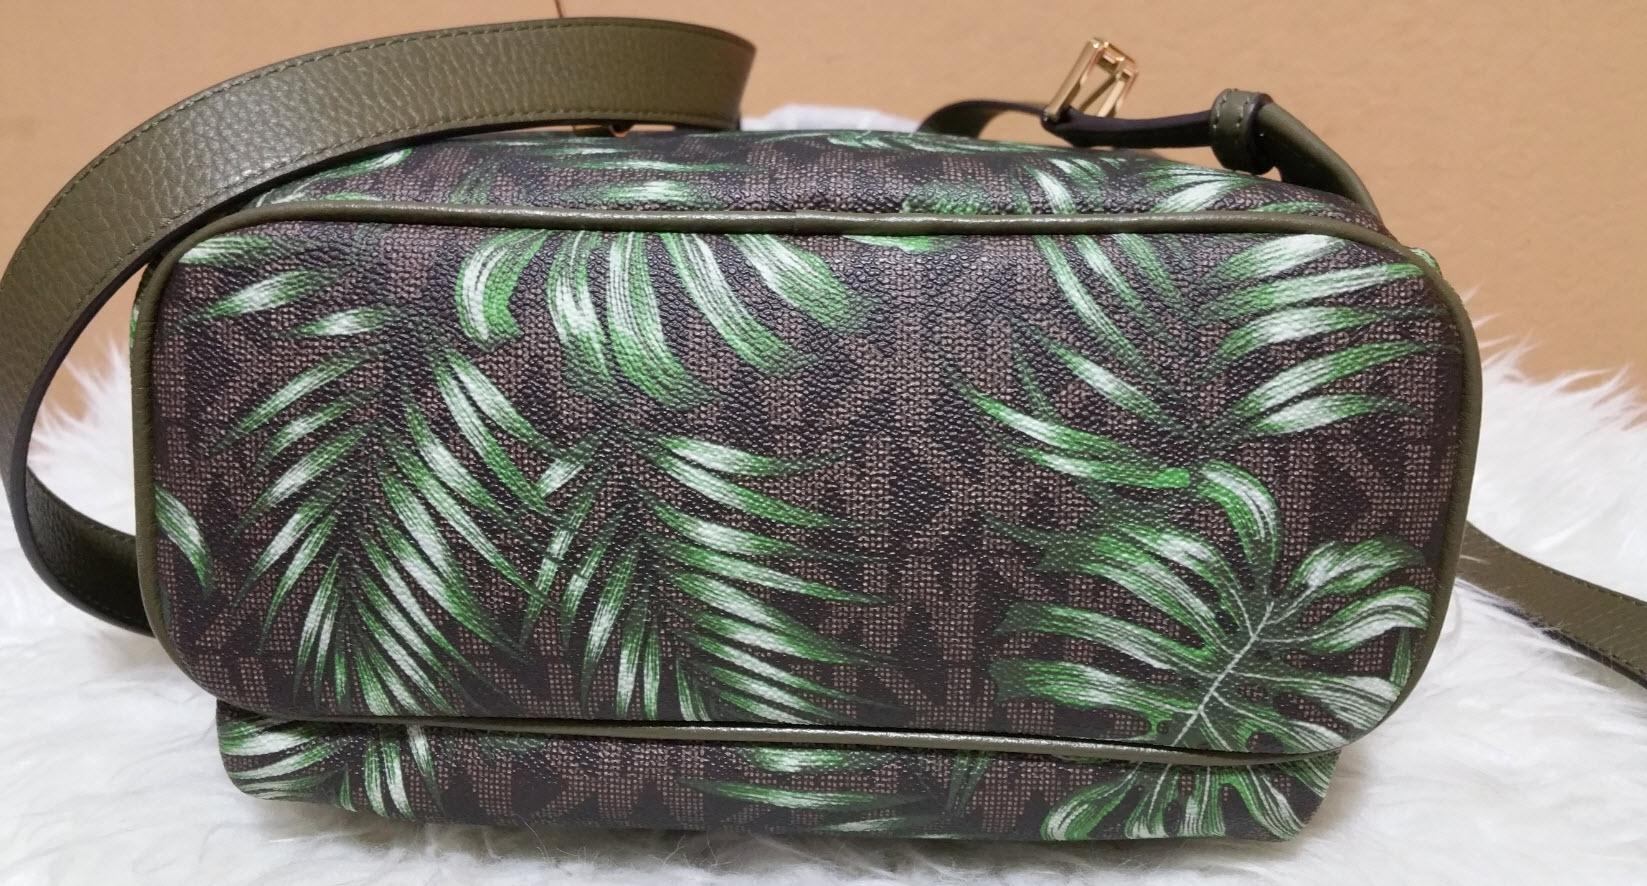 eb6818e43e77 ... reduced michael kors abbey medium palm tree wallet set brown olive  signature pvc leather backpack tradesy ...